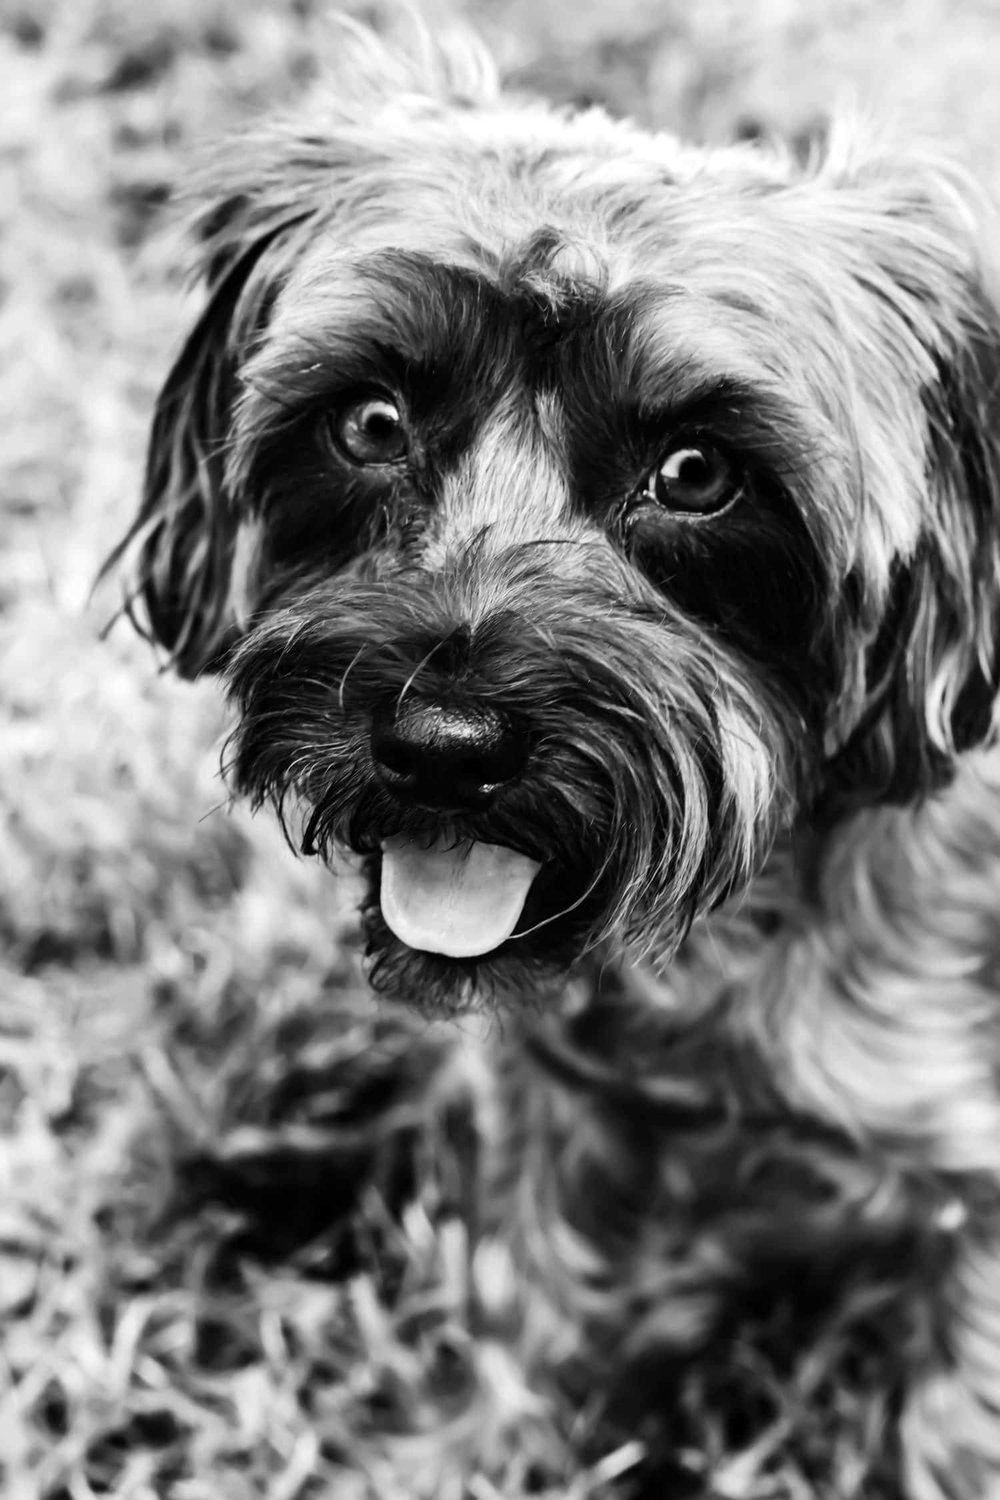 Chloe the yorkie-poo sitting in grass on a late summer day